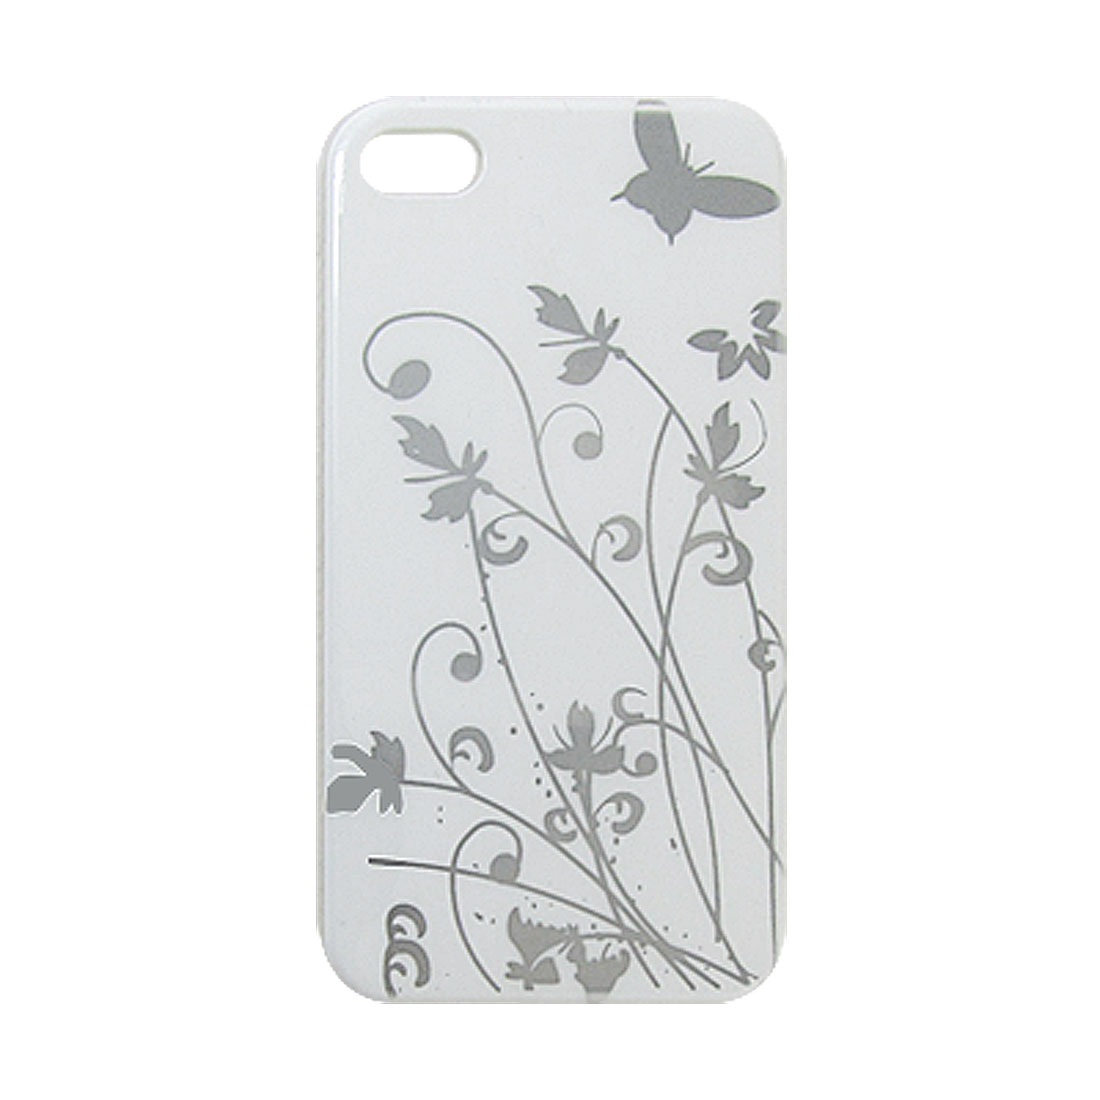 Silver Tone Plant Print IMD Back Case Cover White for iPhone 4 4G 4S